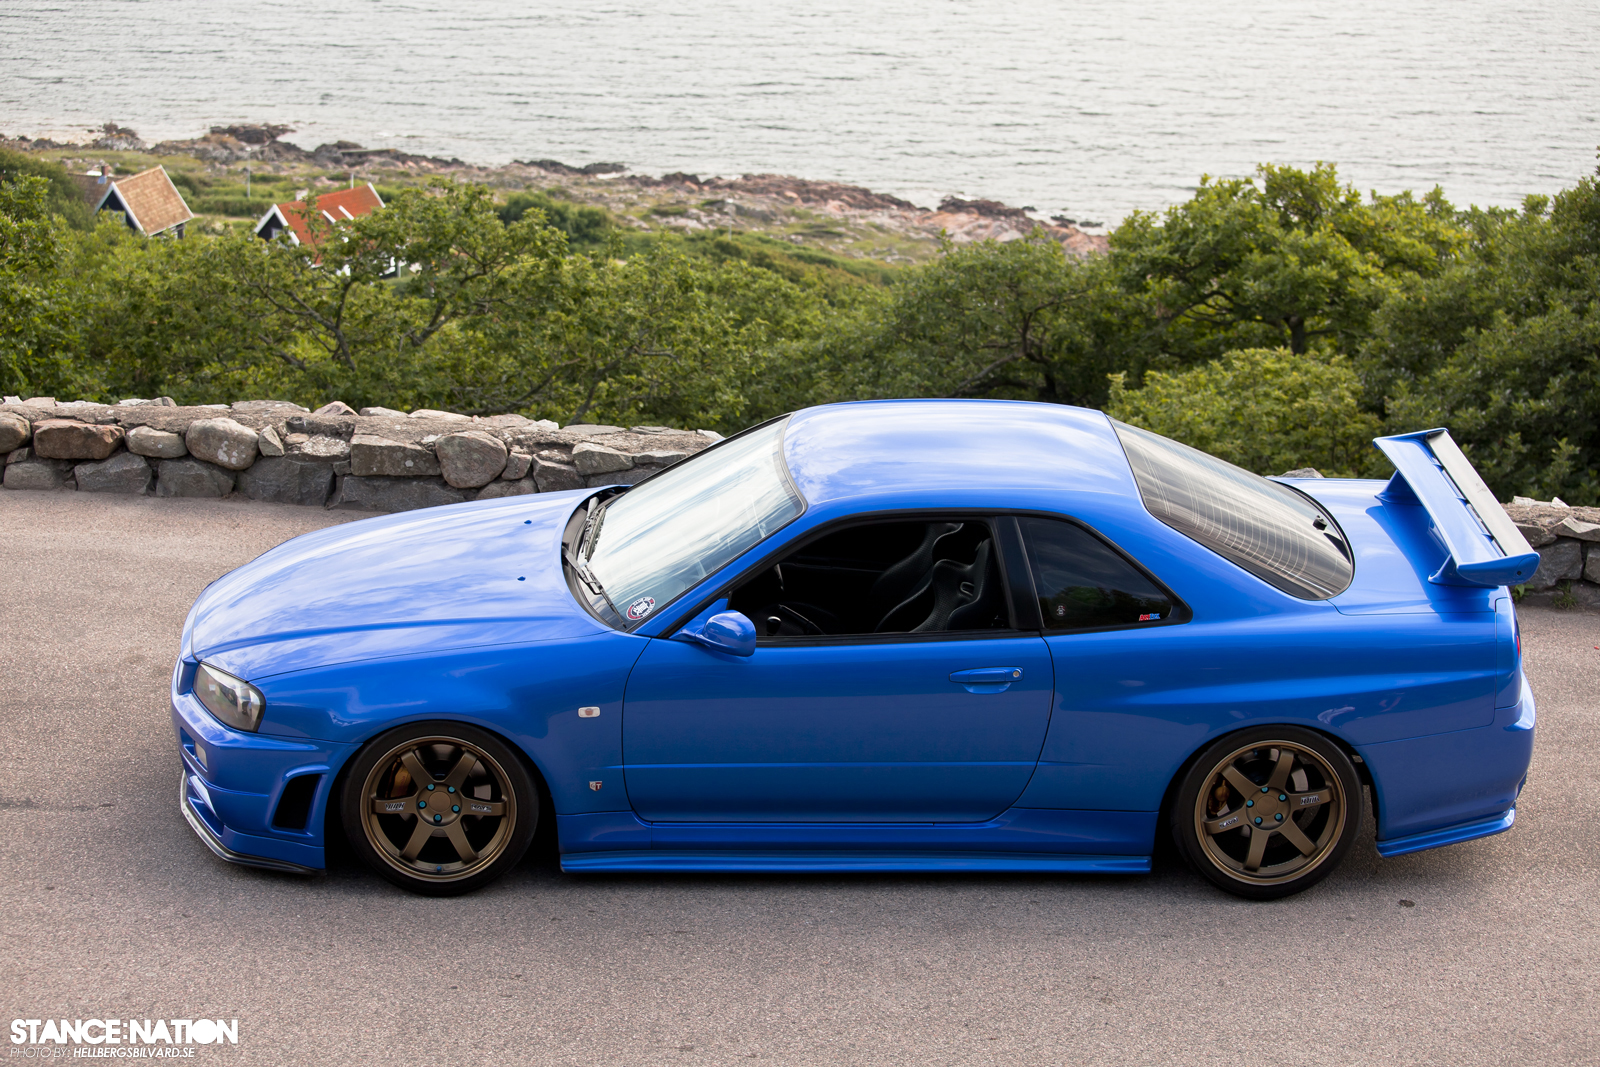 Form and function Skyline R34